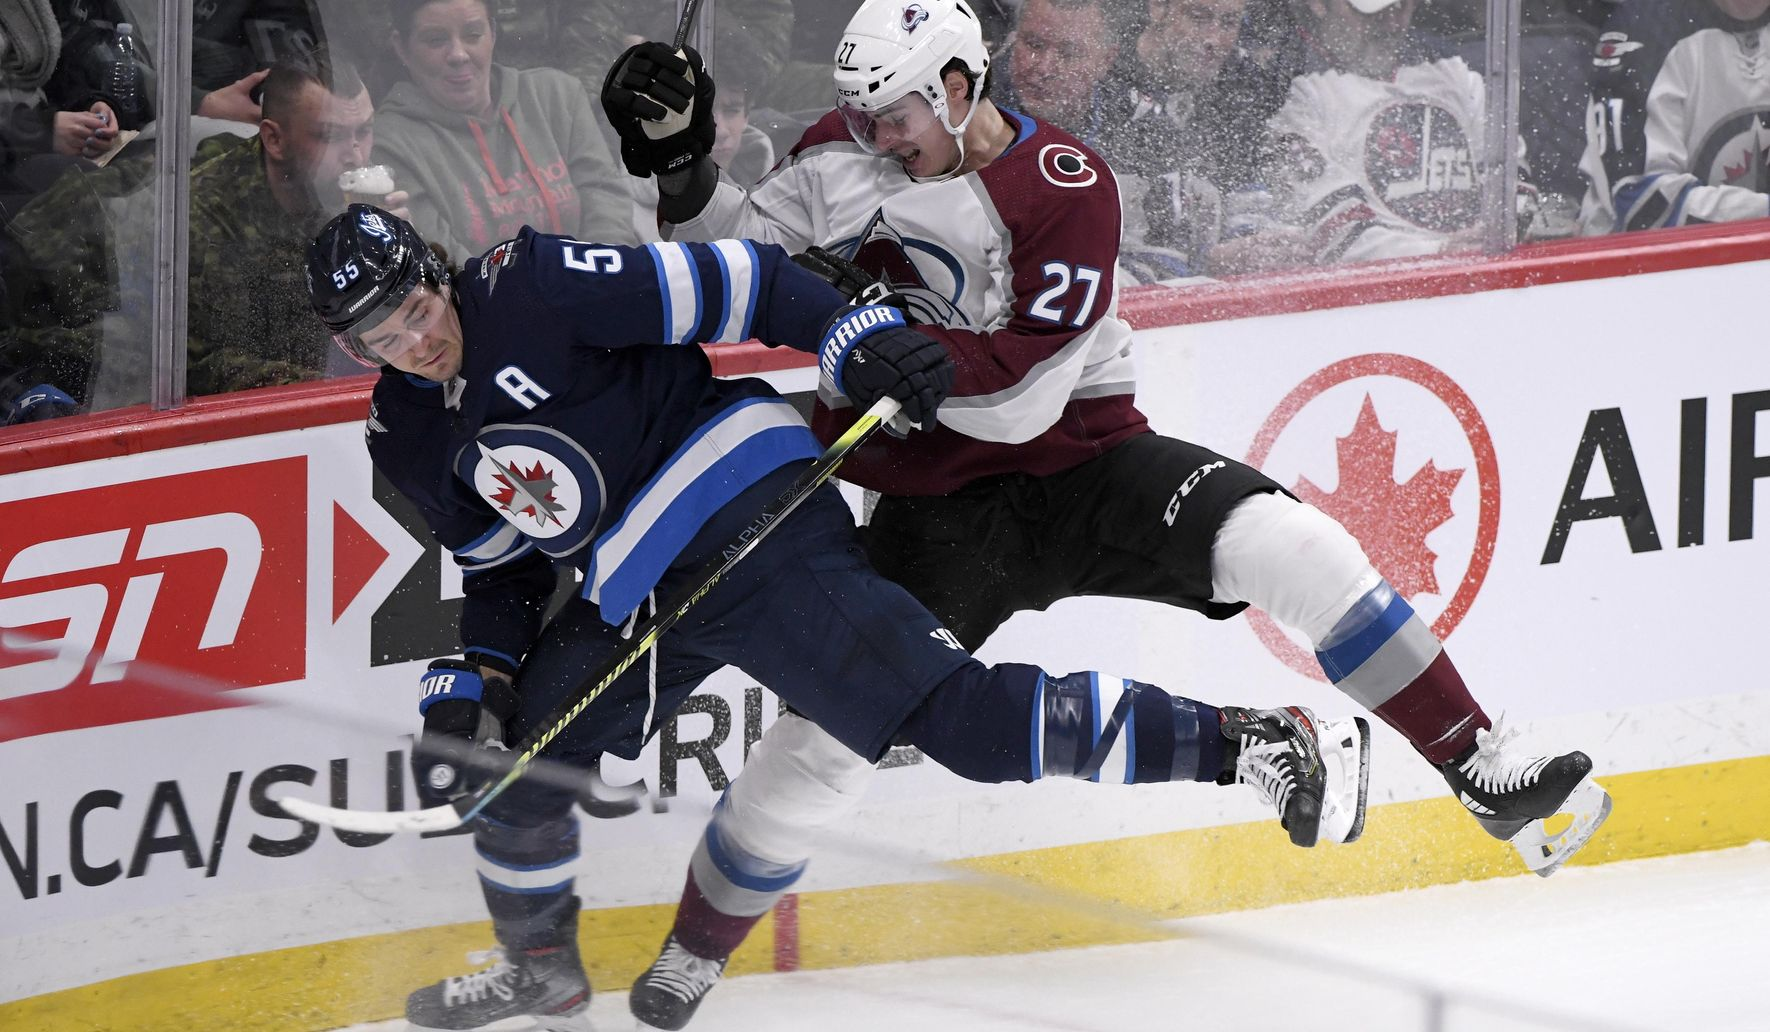 Avalanche_jets_hockey_74345_c0-176-4200-2624_s1770x1032